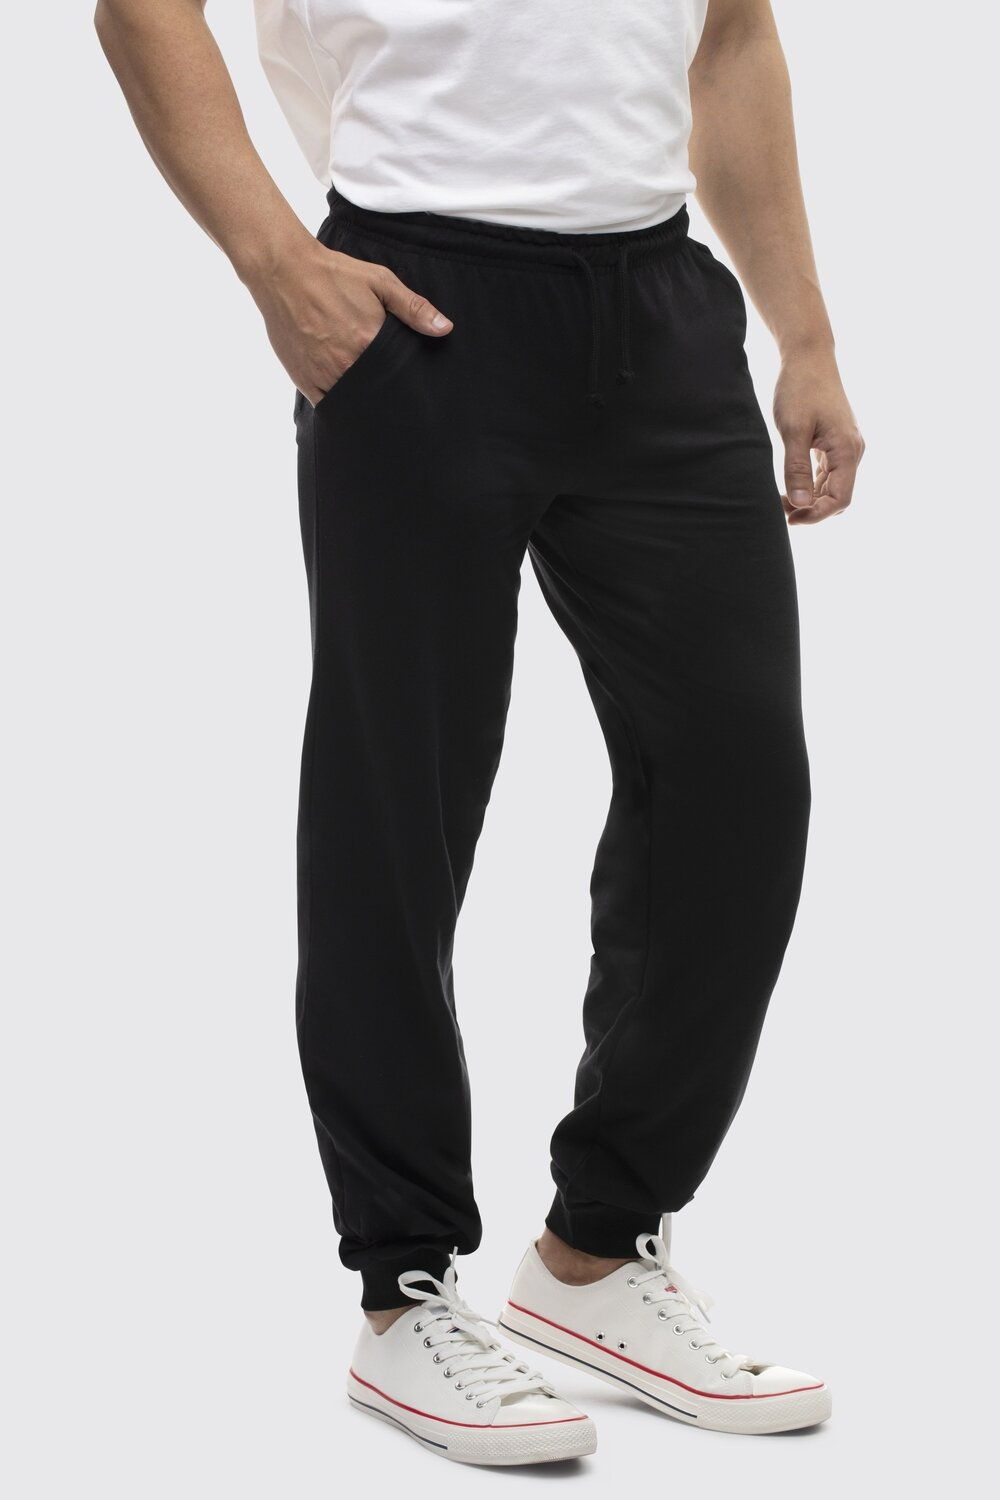 Leichte unisex Switcher Sweatpants  Bryan